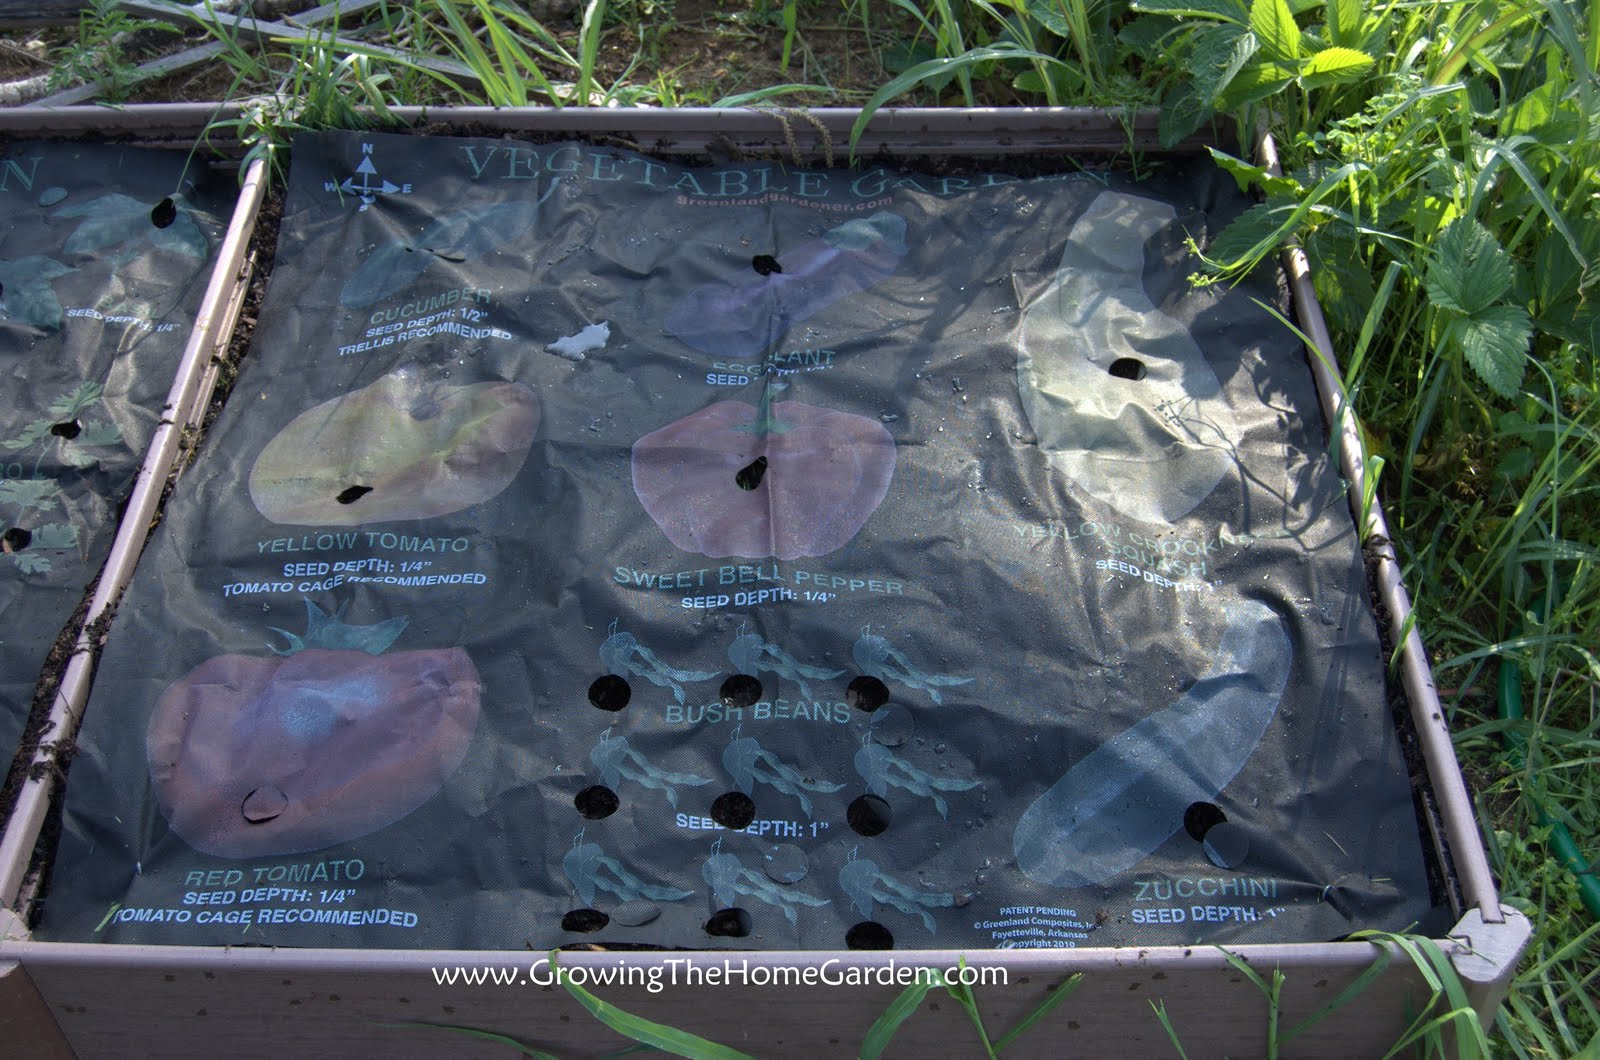 Raised Bed Vegetable Garden Layout Plans All the seed planting holes